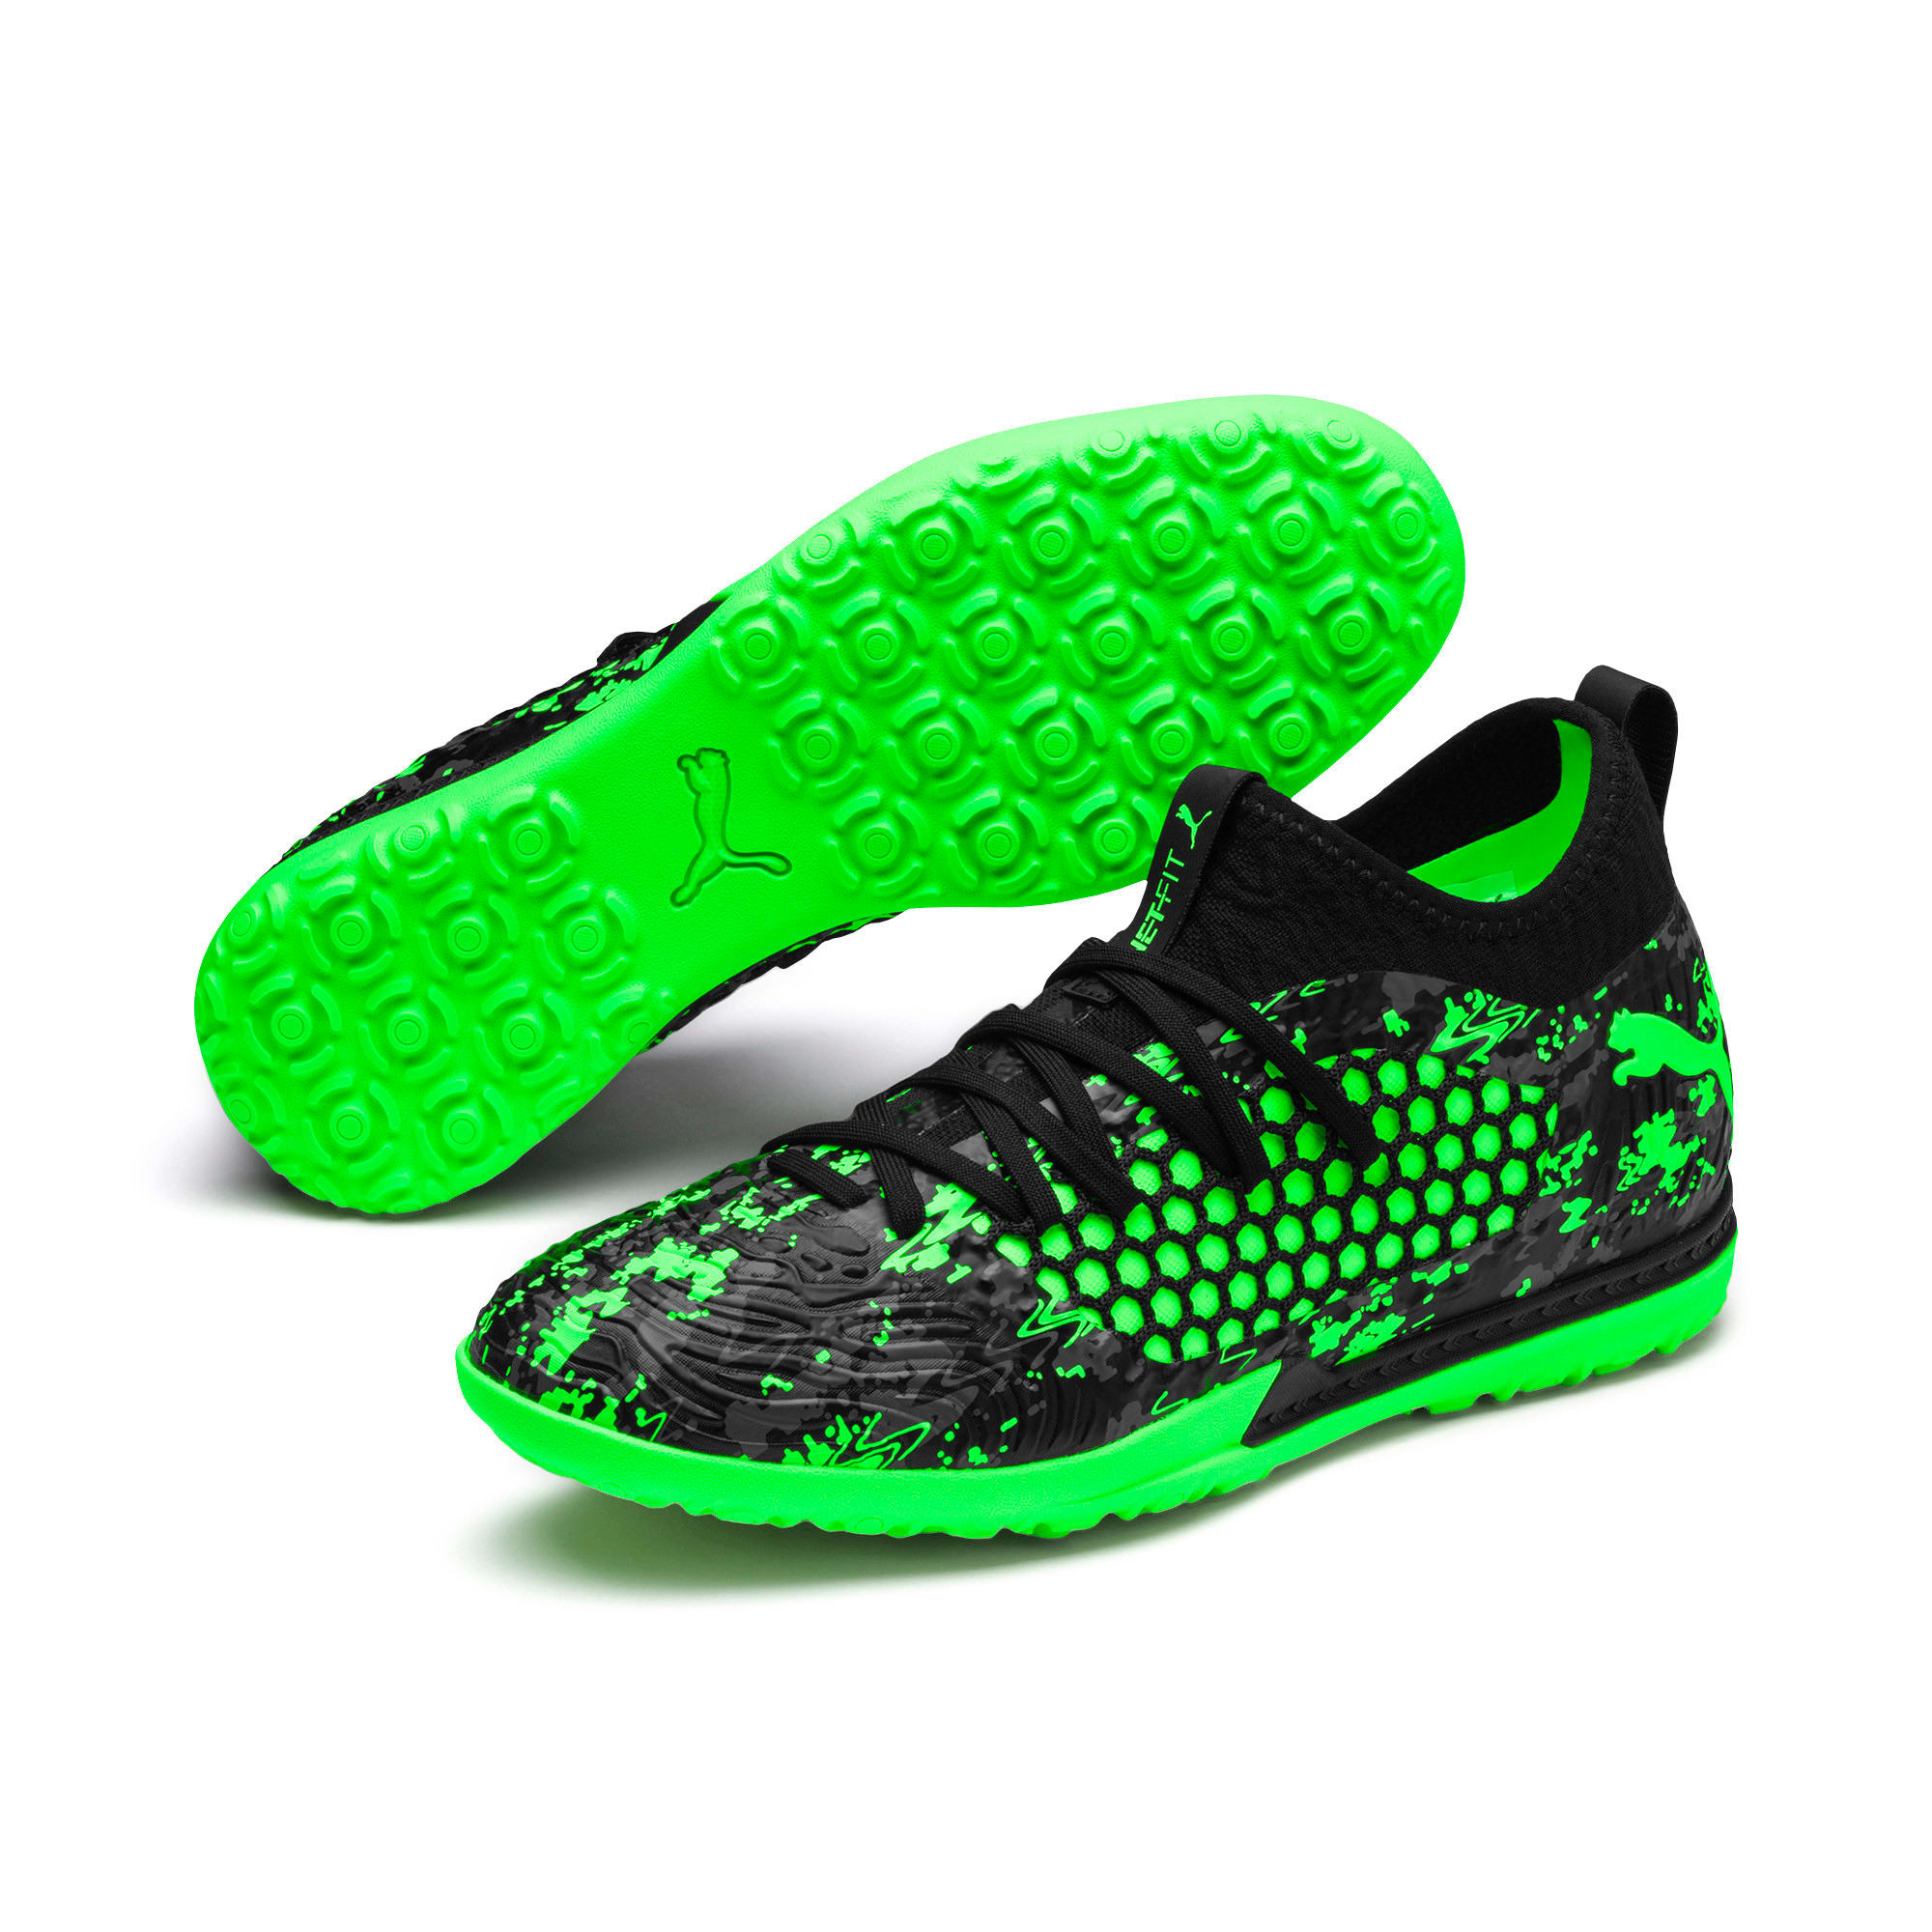 Anteprima 2 di FUTURE 19.3 NETFIT TT Men's Football Boots, Black-Gray-Green Gecko, medio